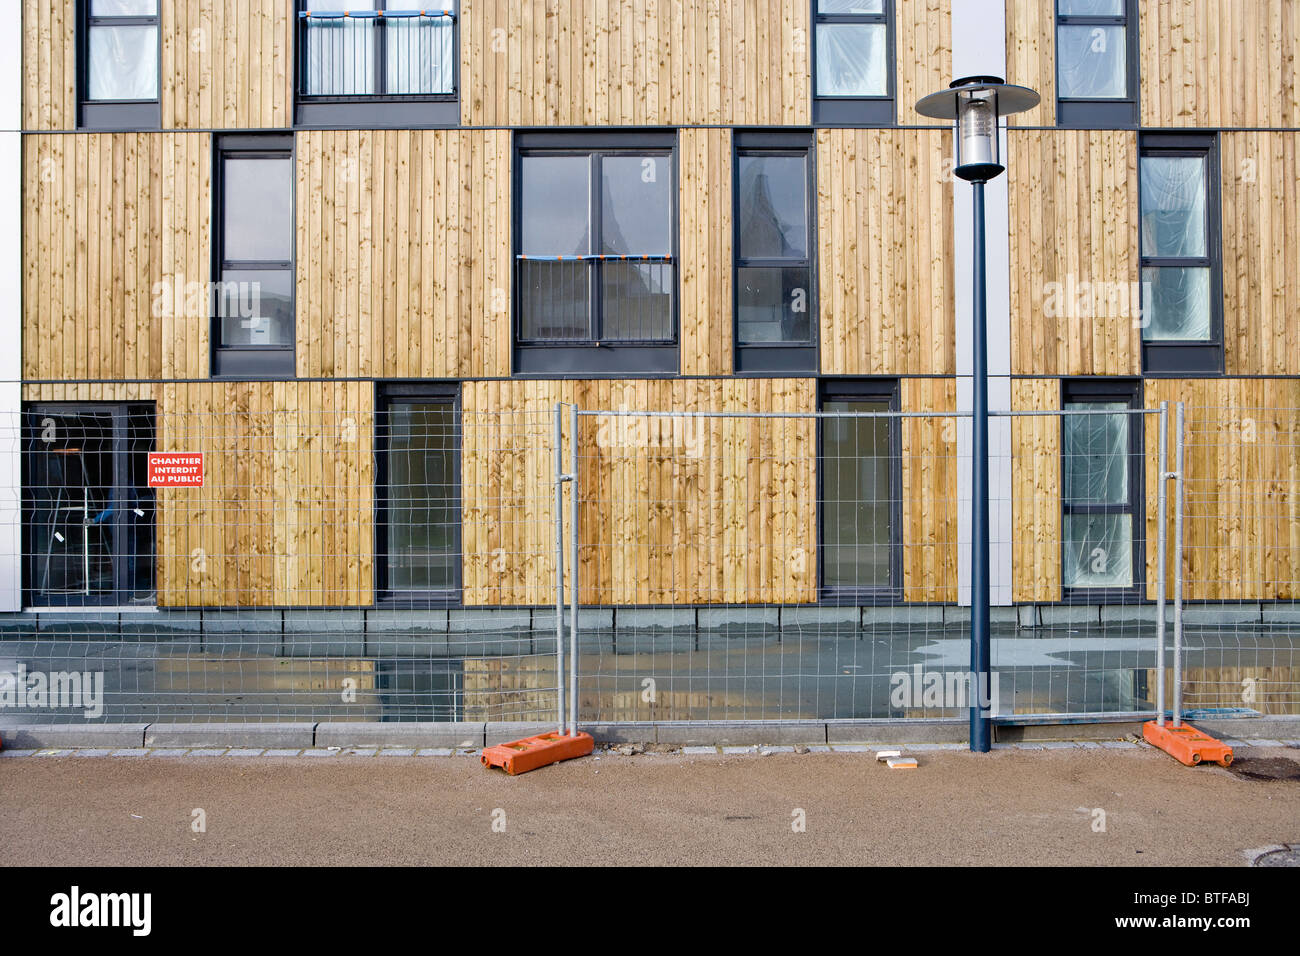 Apartment building under construction - Stock Image